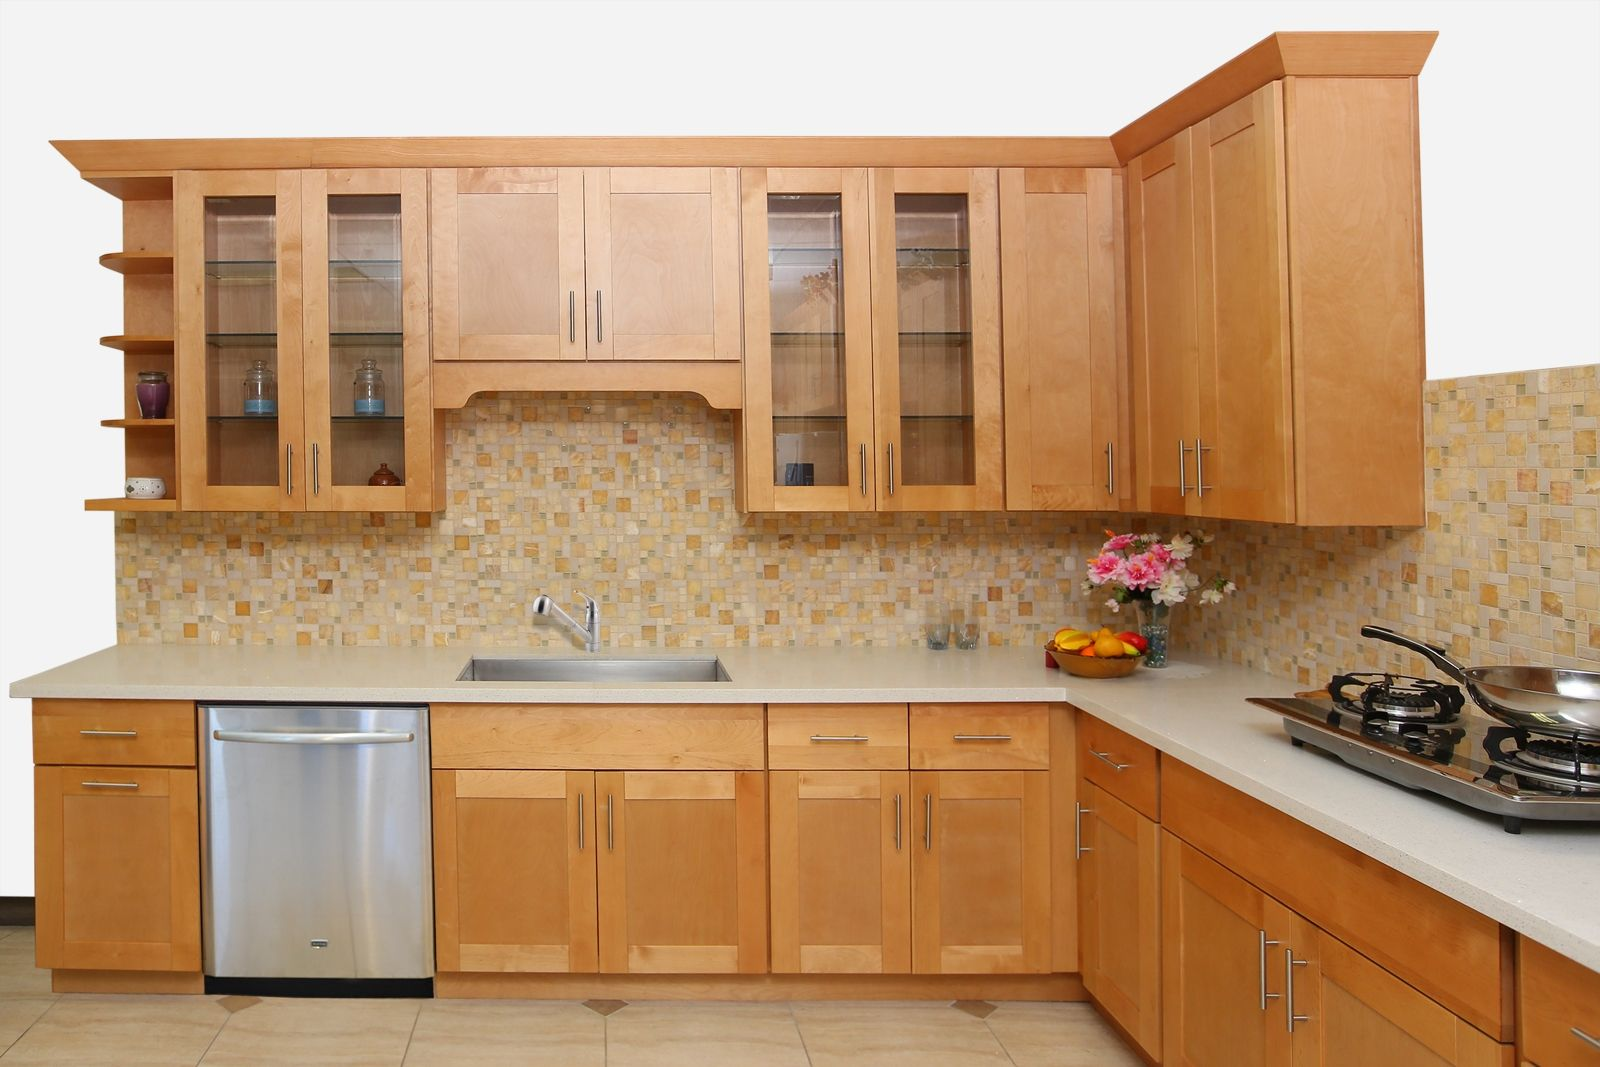 Kitchen Cabinets Shaker Style Maple Then You Certainly Have To Pay Another Focus Shaker Style Kitchen Cabinets Maple Kitchen Cabinets Shaker Kitchen Cabinets